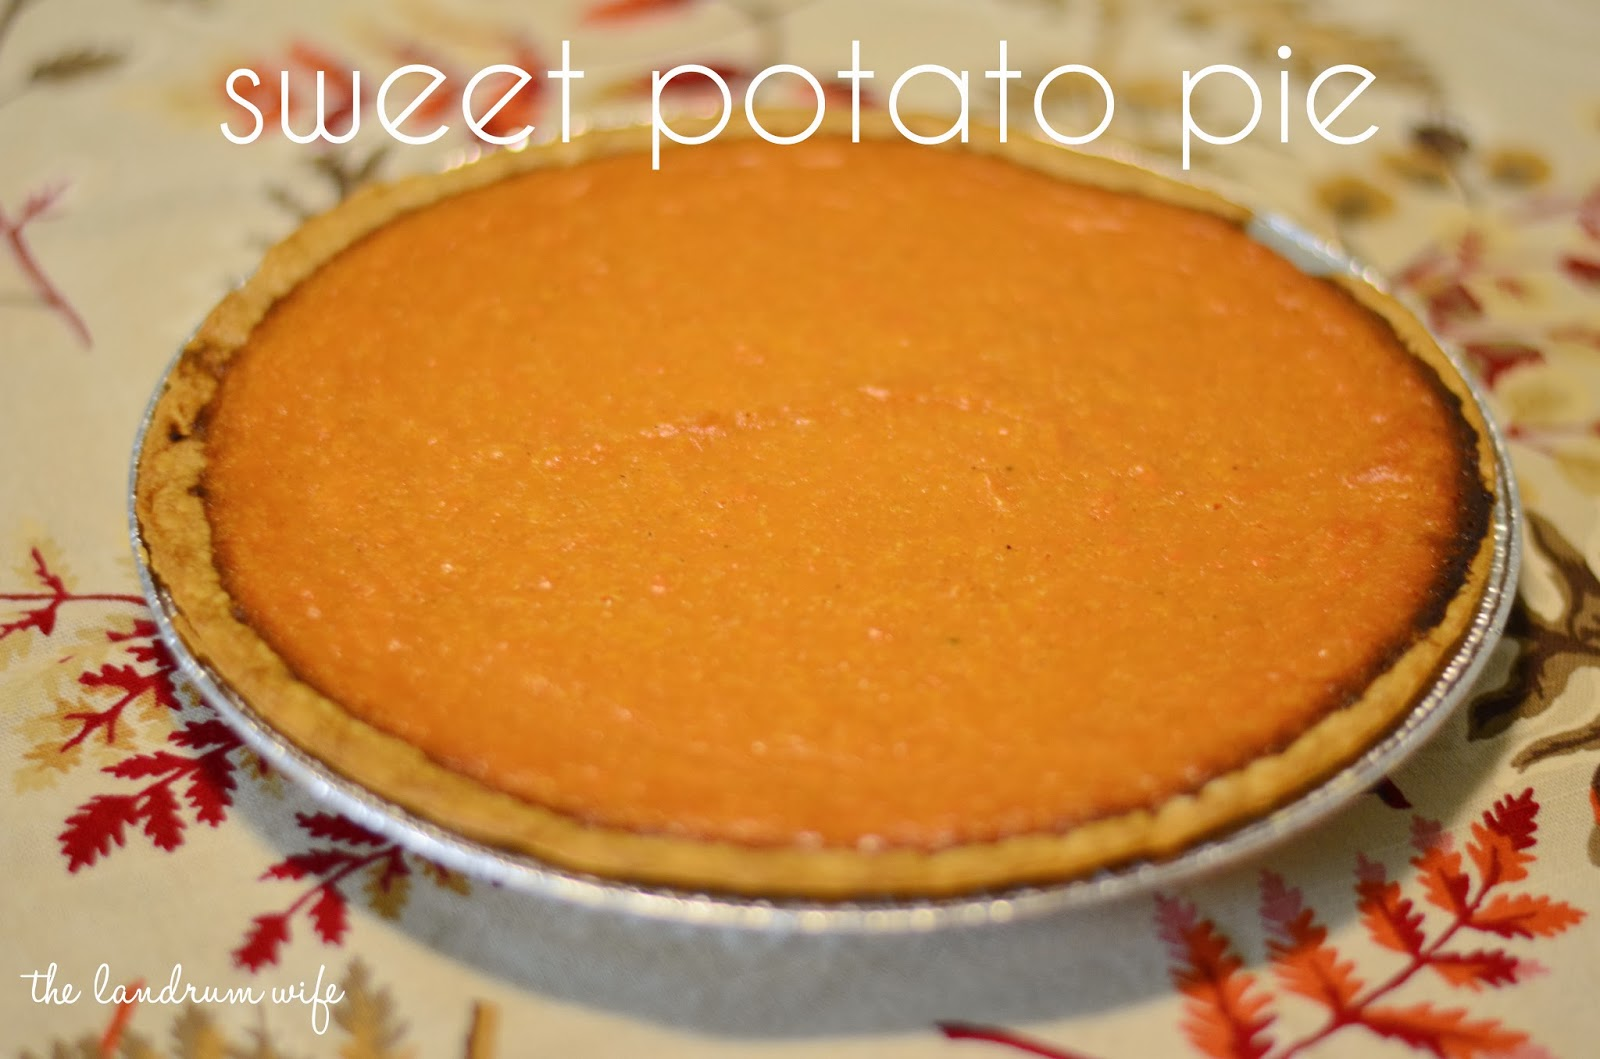 The Landrum Wife: Sweet Potato Pie